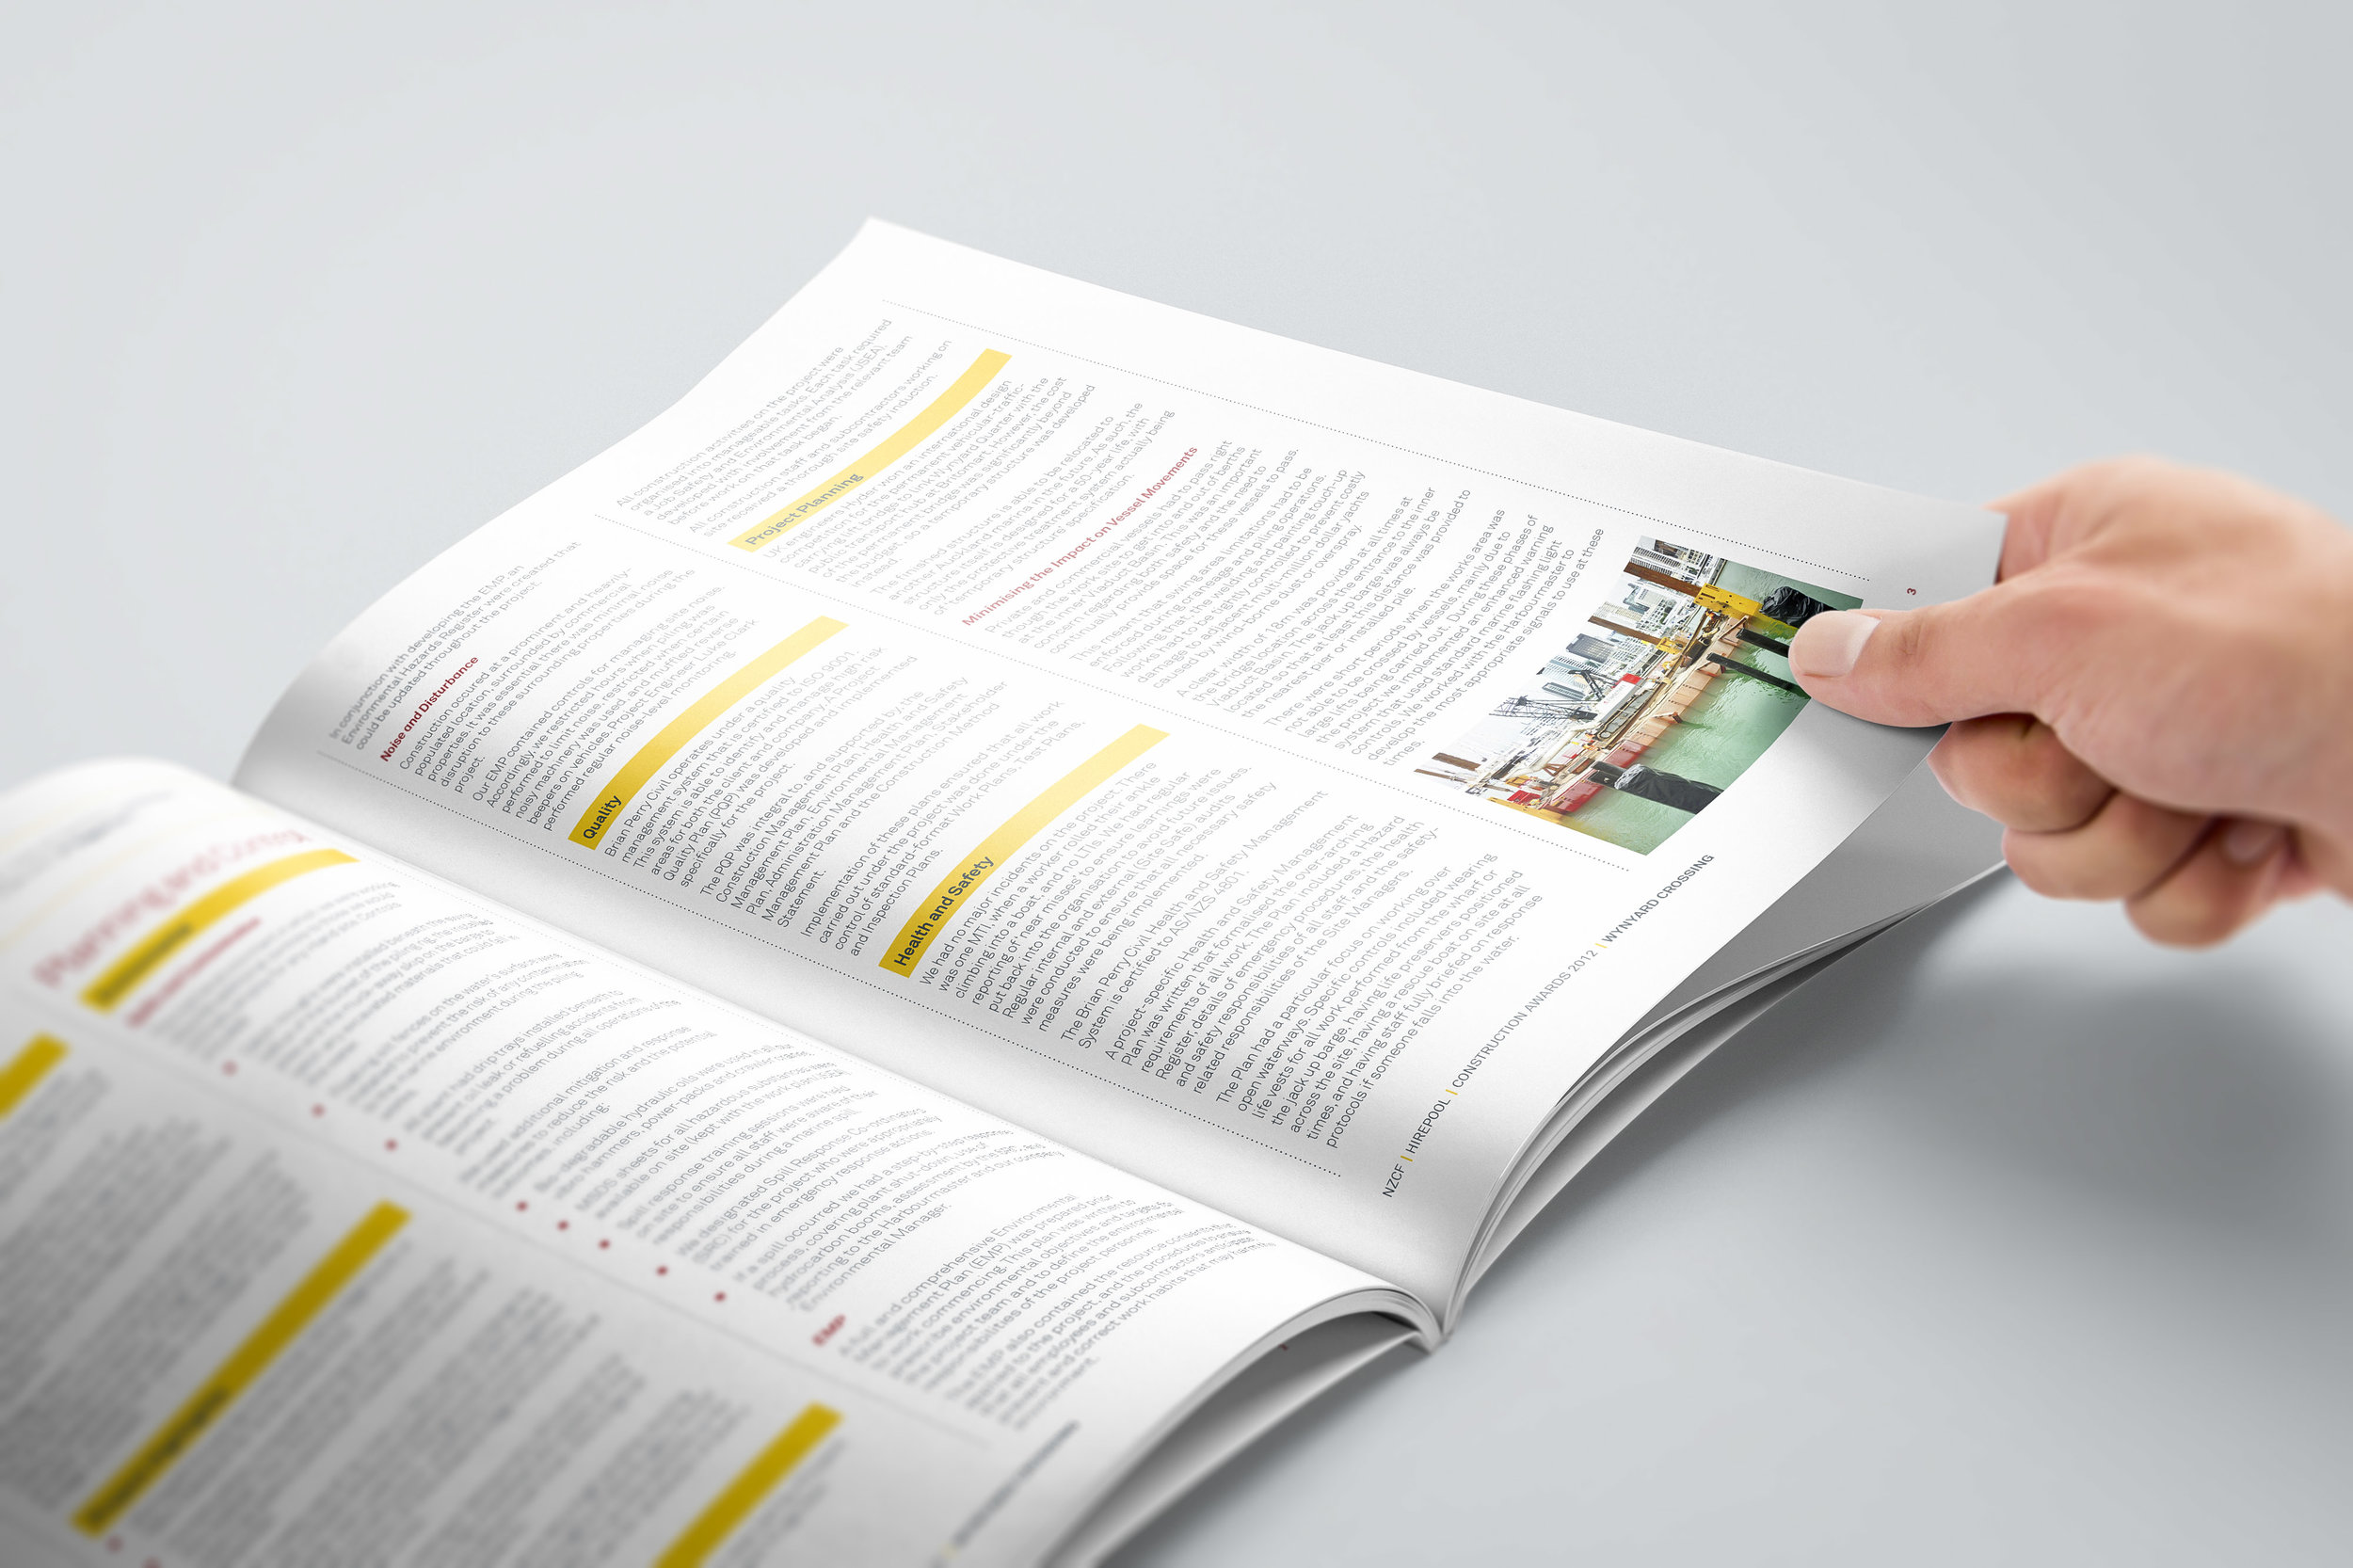 A hand  flipping through an open brochure placed on a table